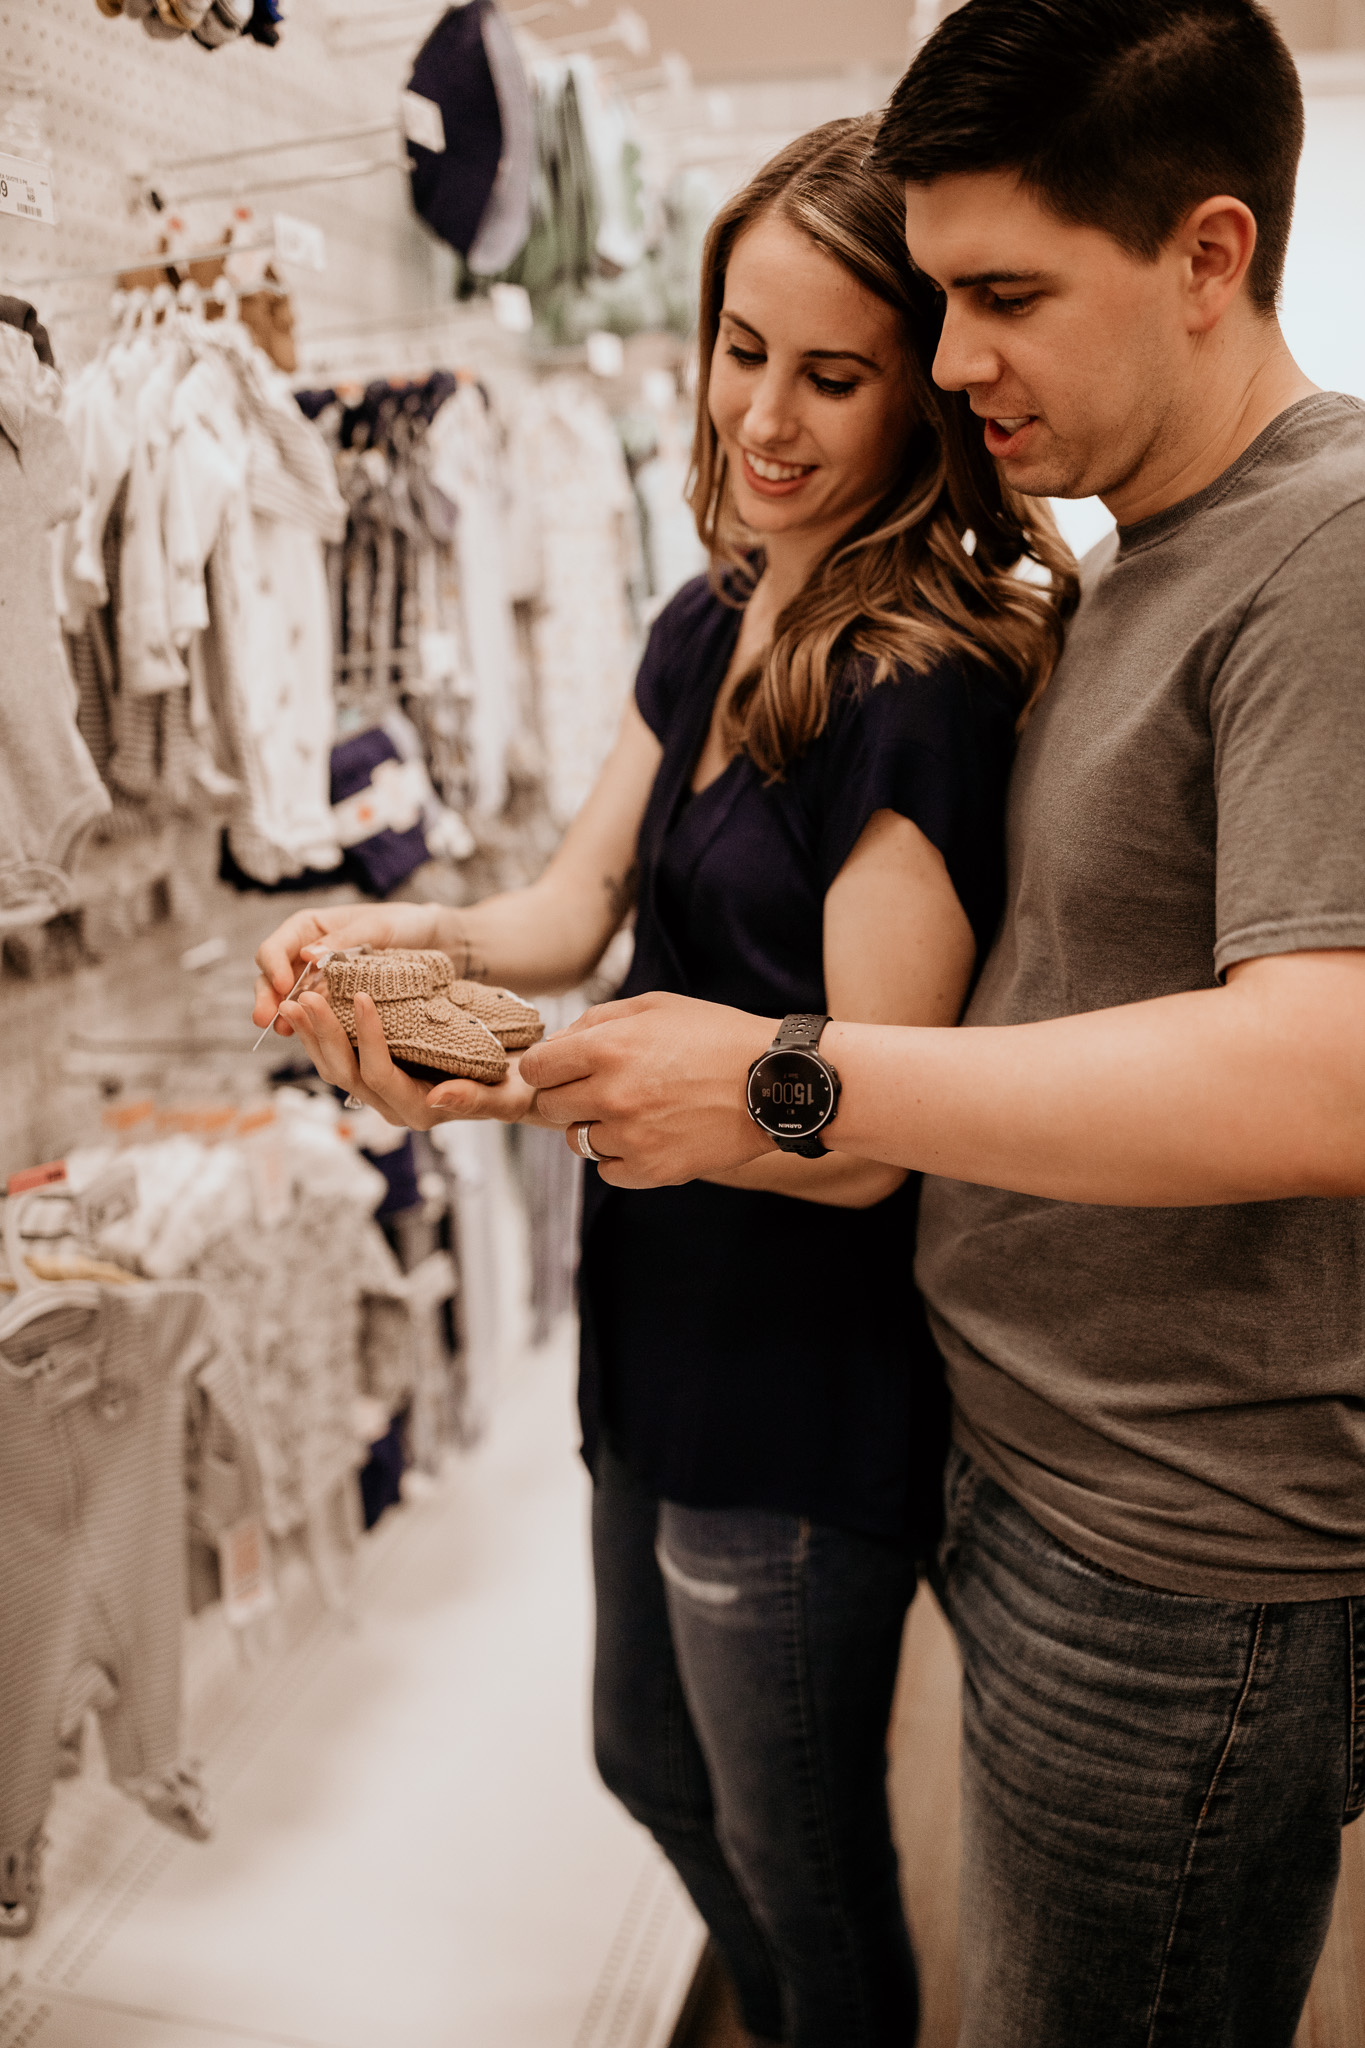 Pregnant Couple Shopping for Little One